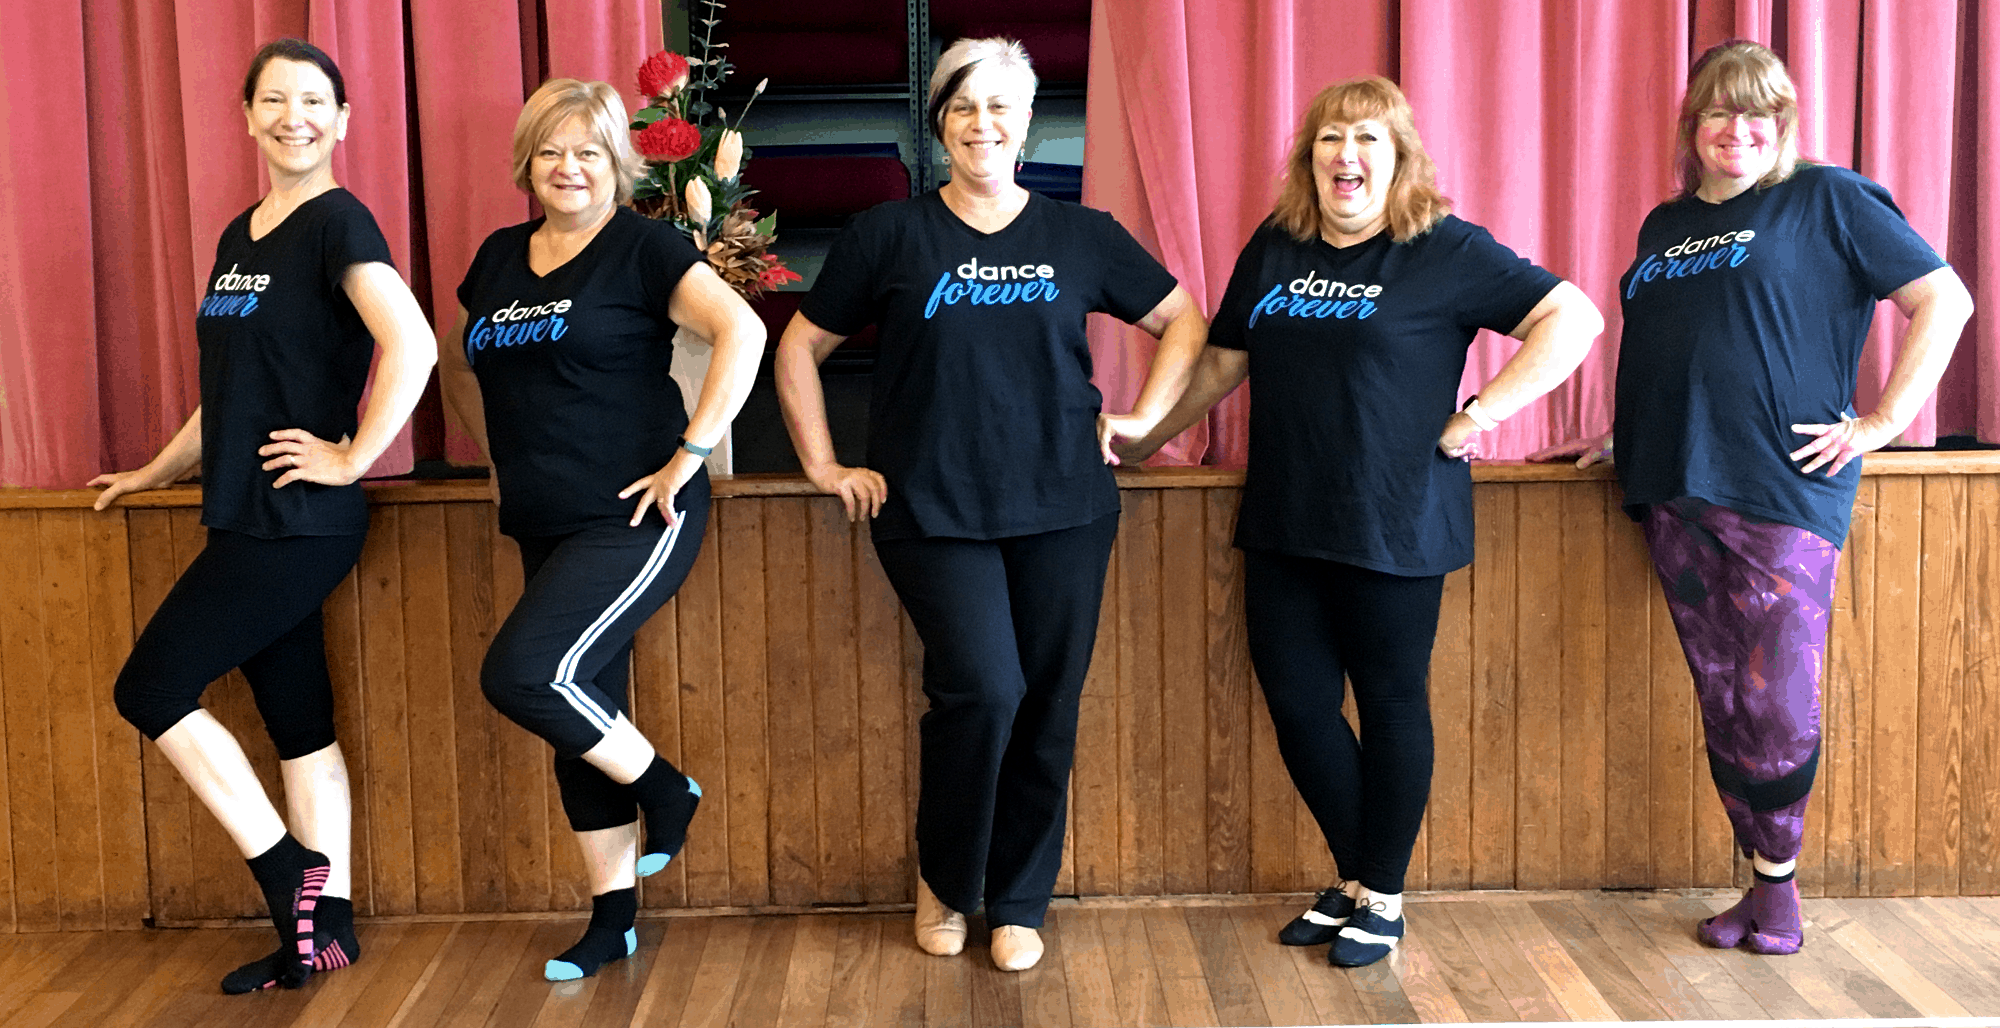 Dance classes for mature adults - keep you feeling young in body and mind - at Move Through LIfe Dance Studio